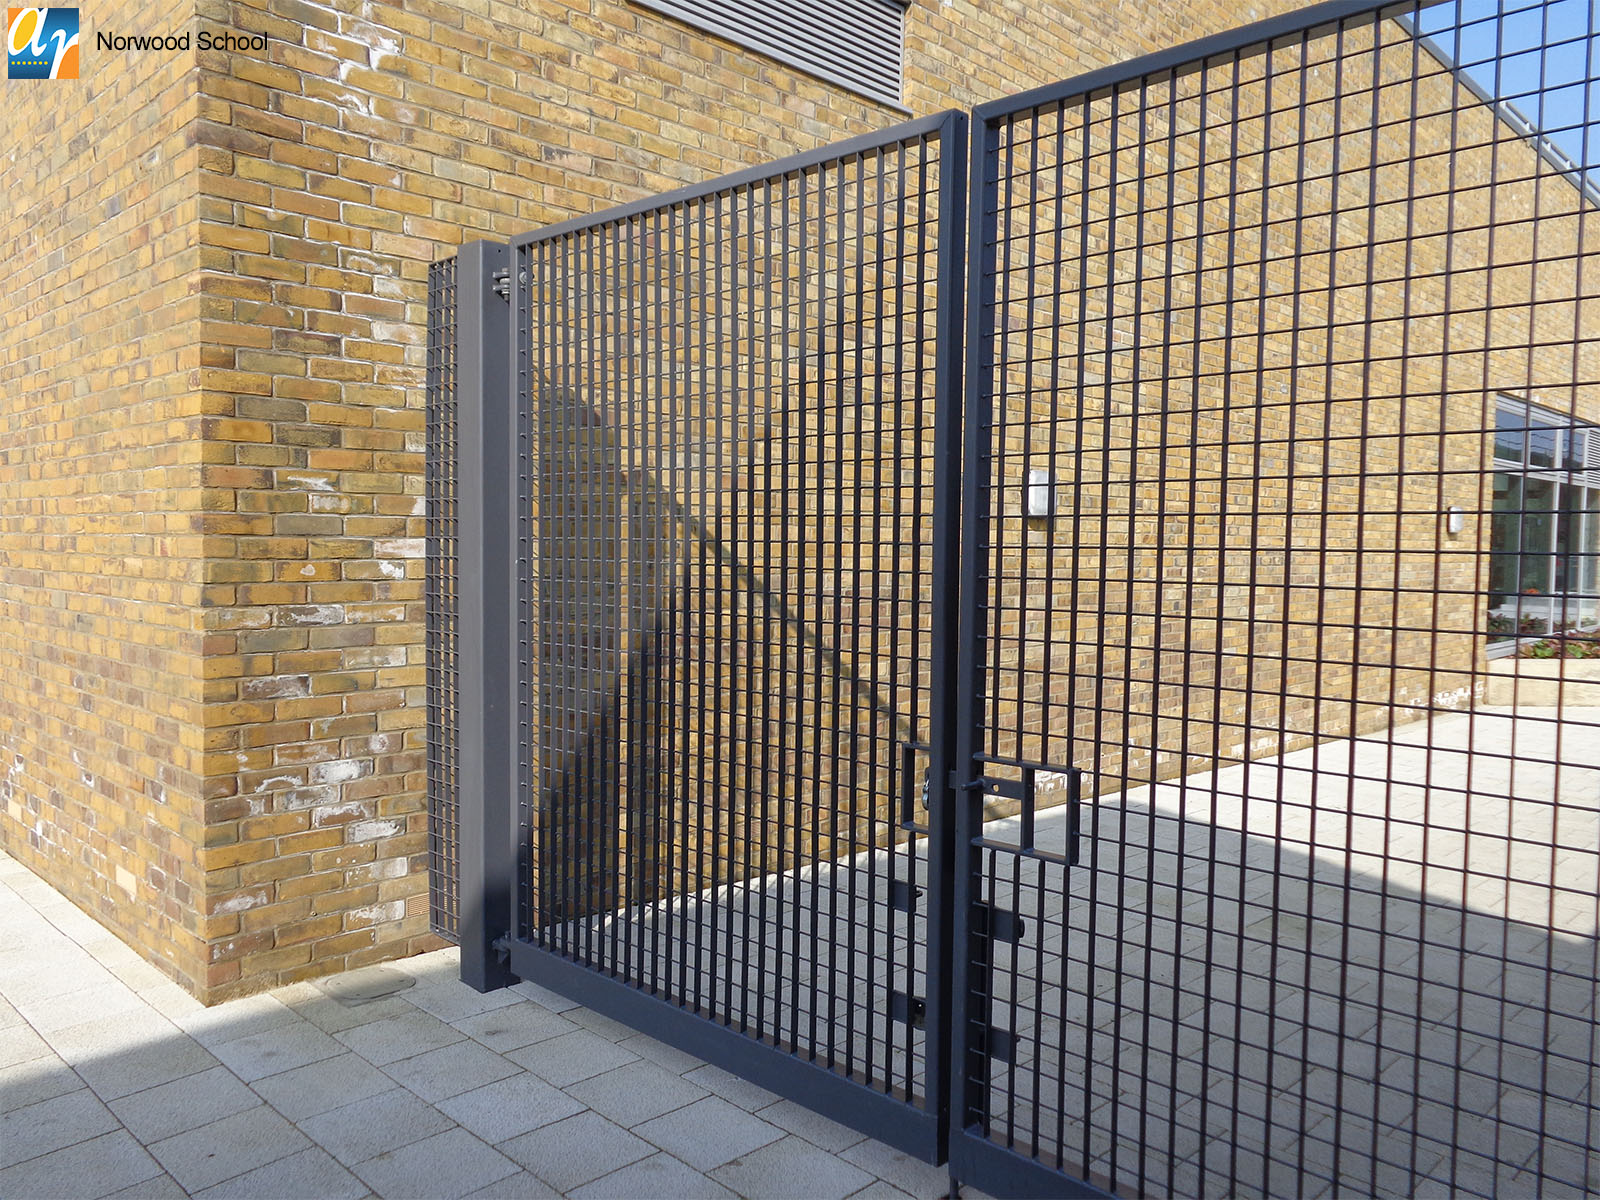 Grating Fence, Orsogril, Vizogril, Electrofused Grating